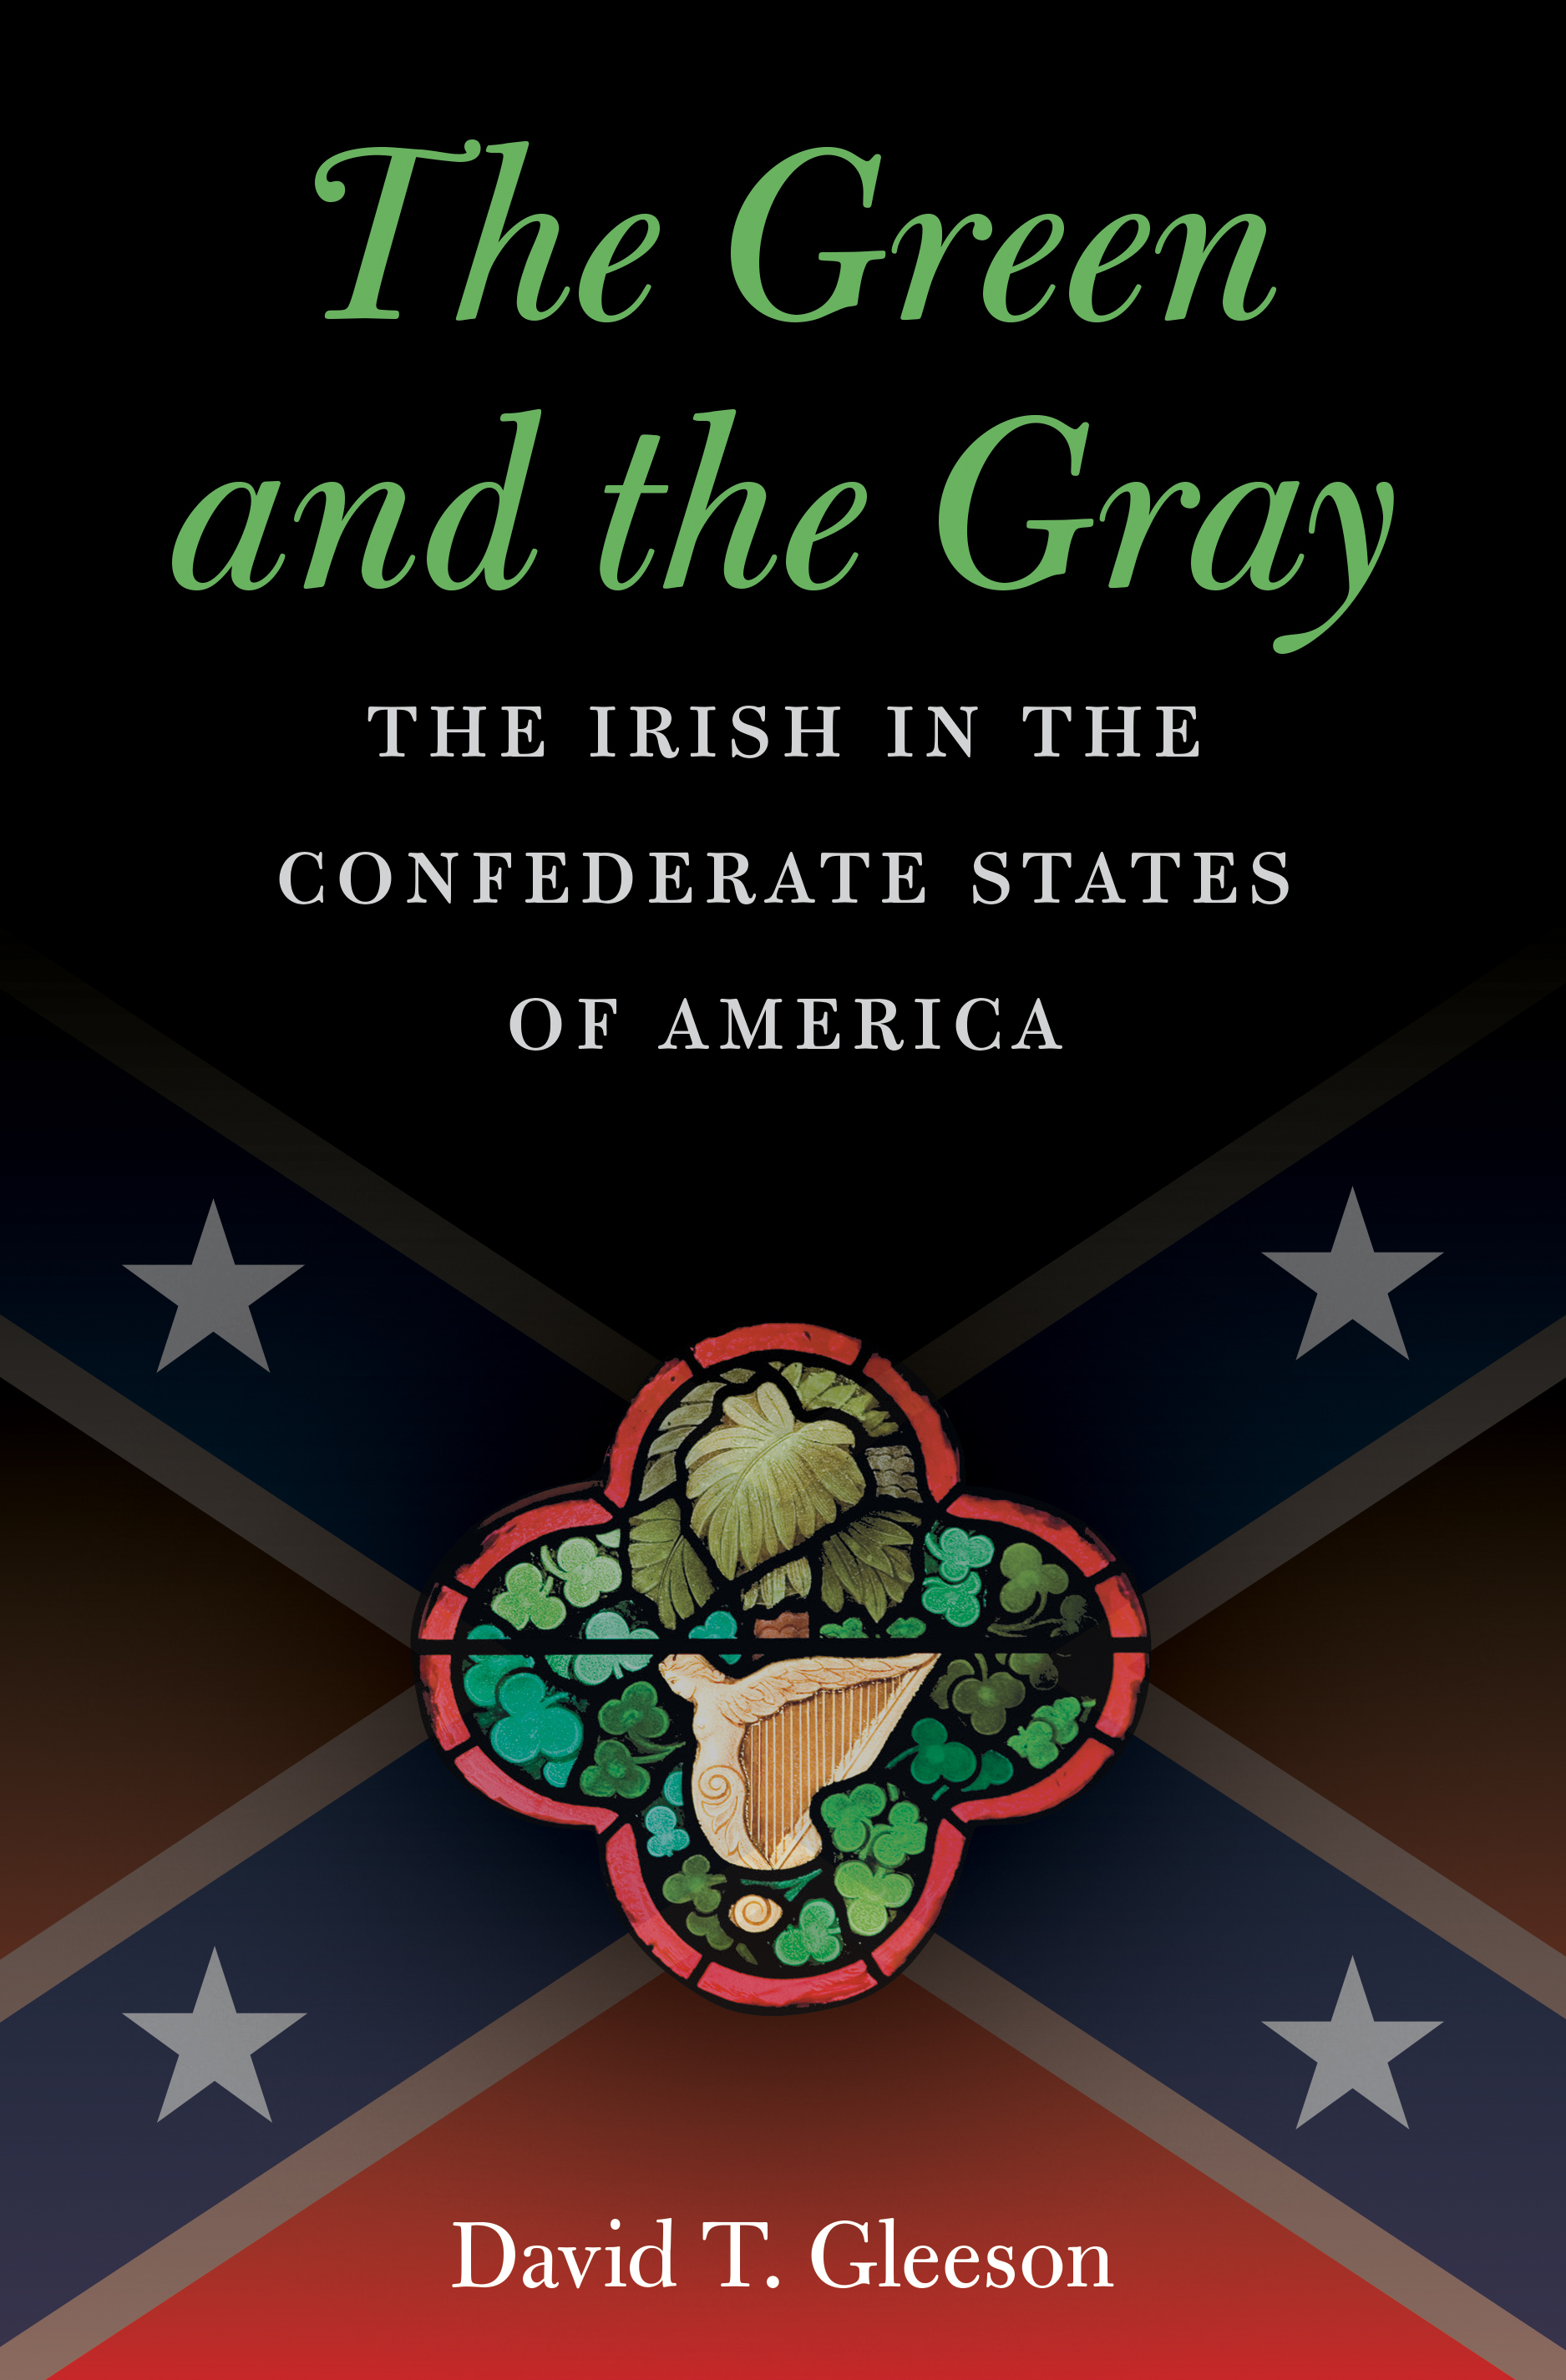 The Green and the Gray by David T. Gleeson (UNC Press)